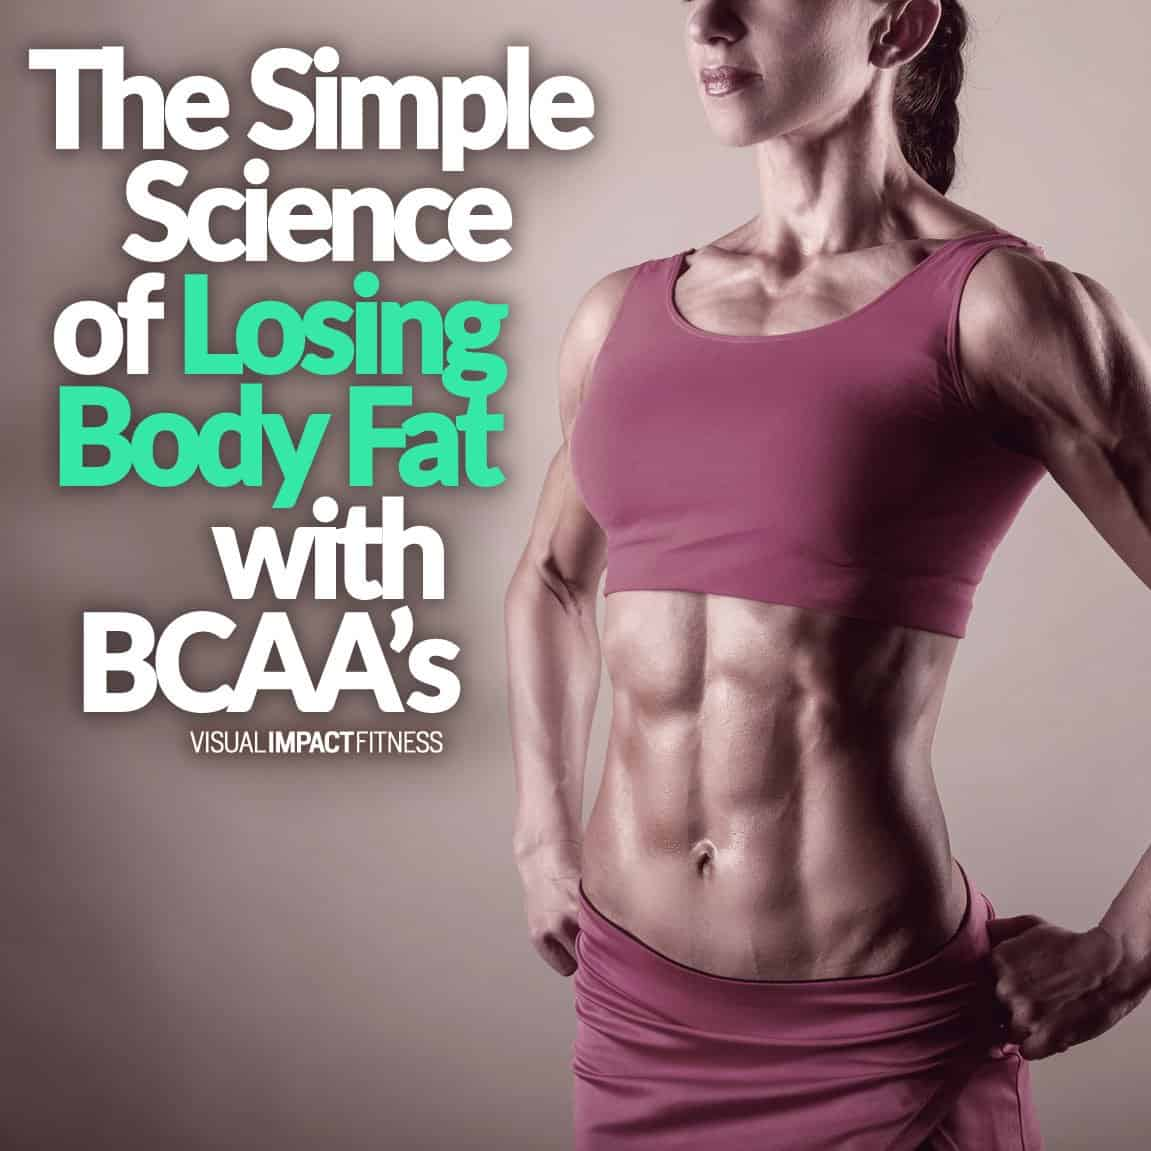 The Simple Science Of Losing Body Fat With BCAA's